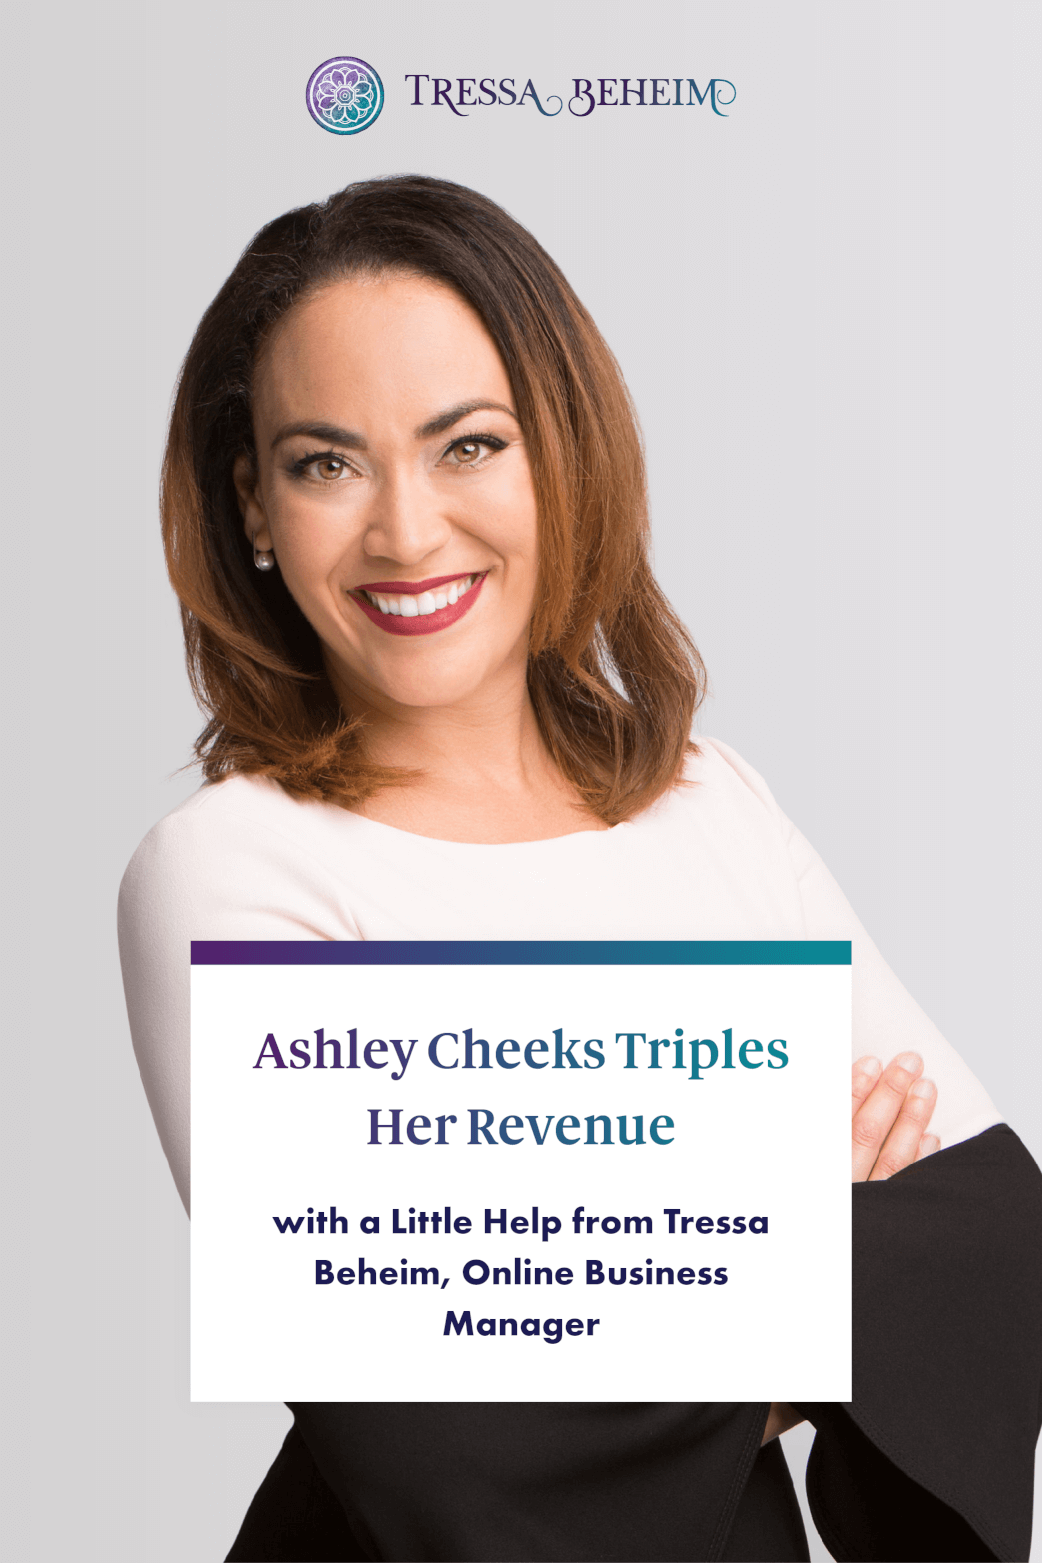 Ashley Cheeks Triples Her Revenue with a Little Help from Tressa Beheim, Online Business Manager